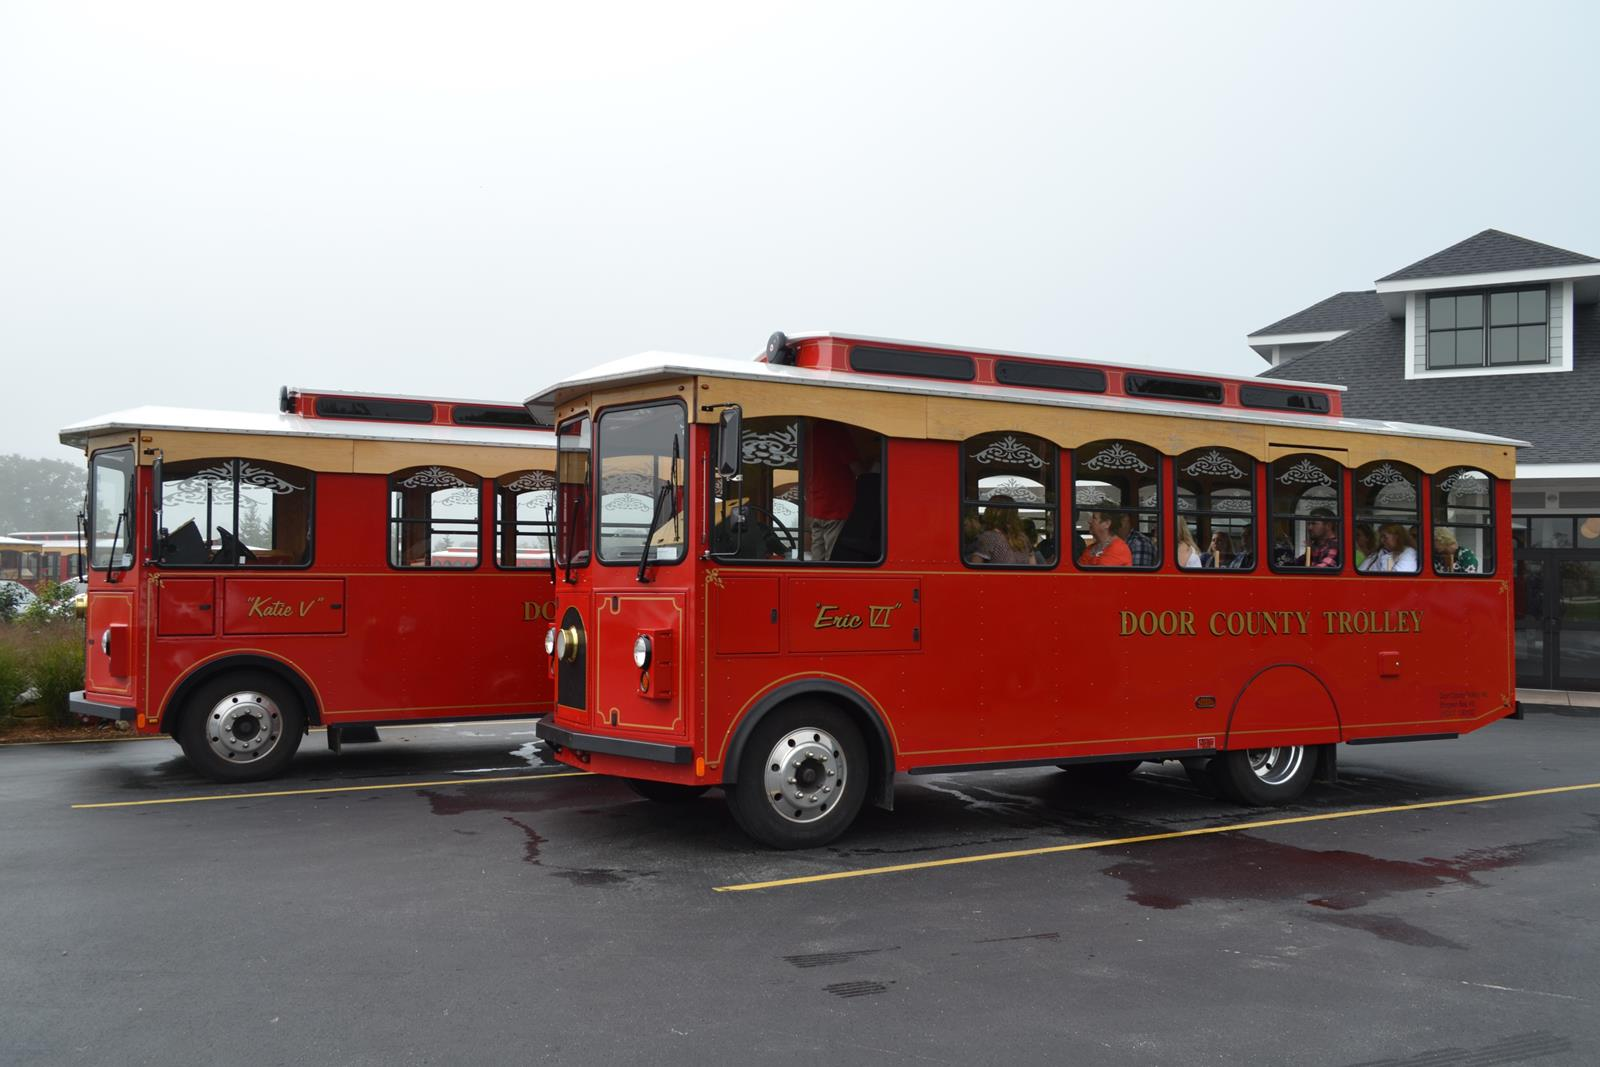 Door County Trolley Company's red trolleys offer groups a number of tour choices